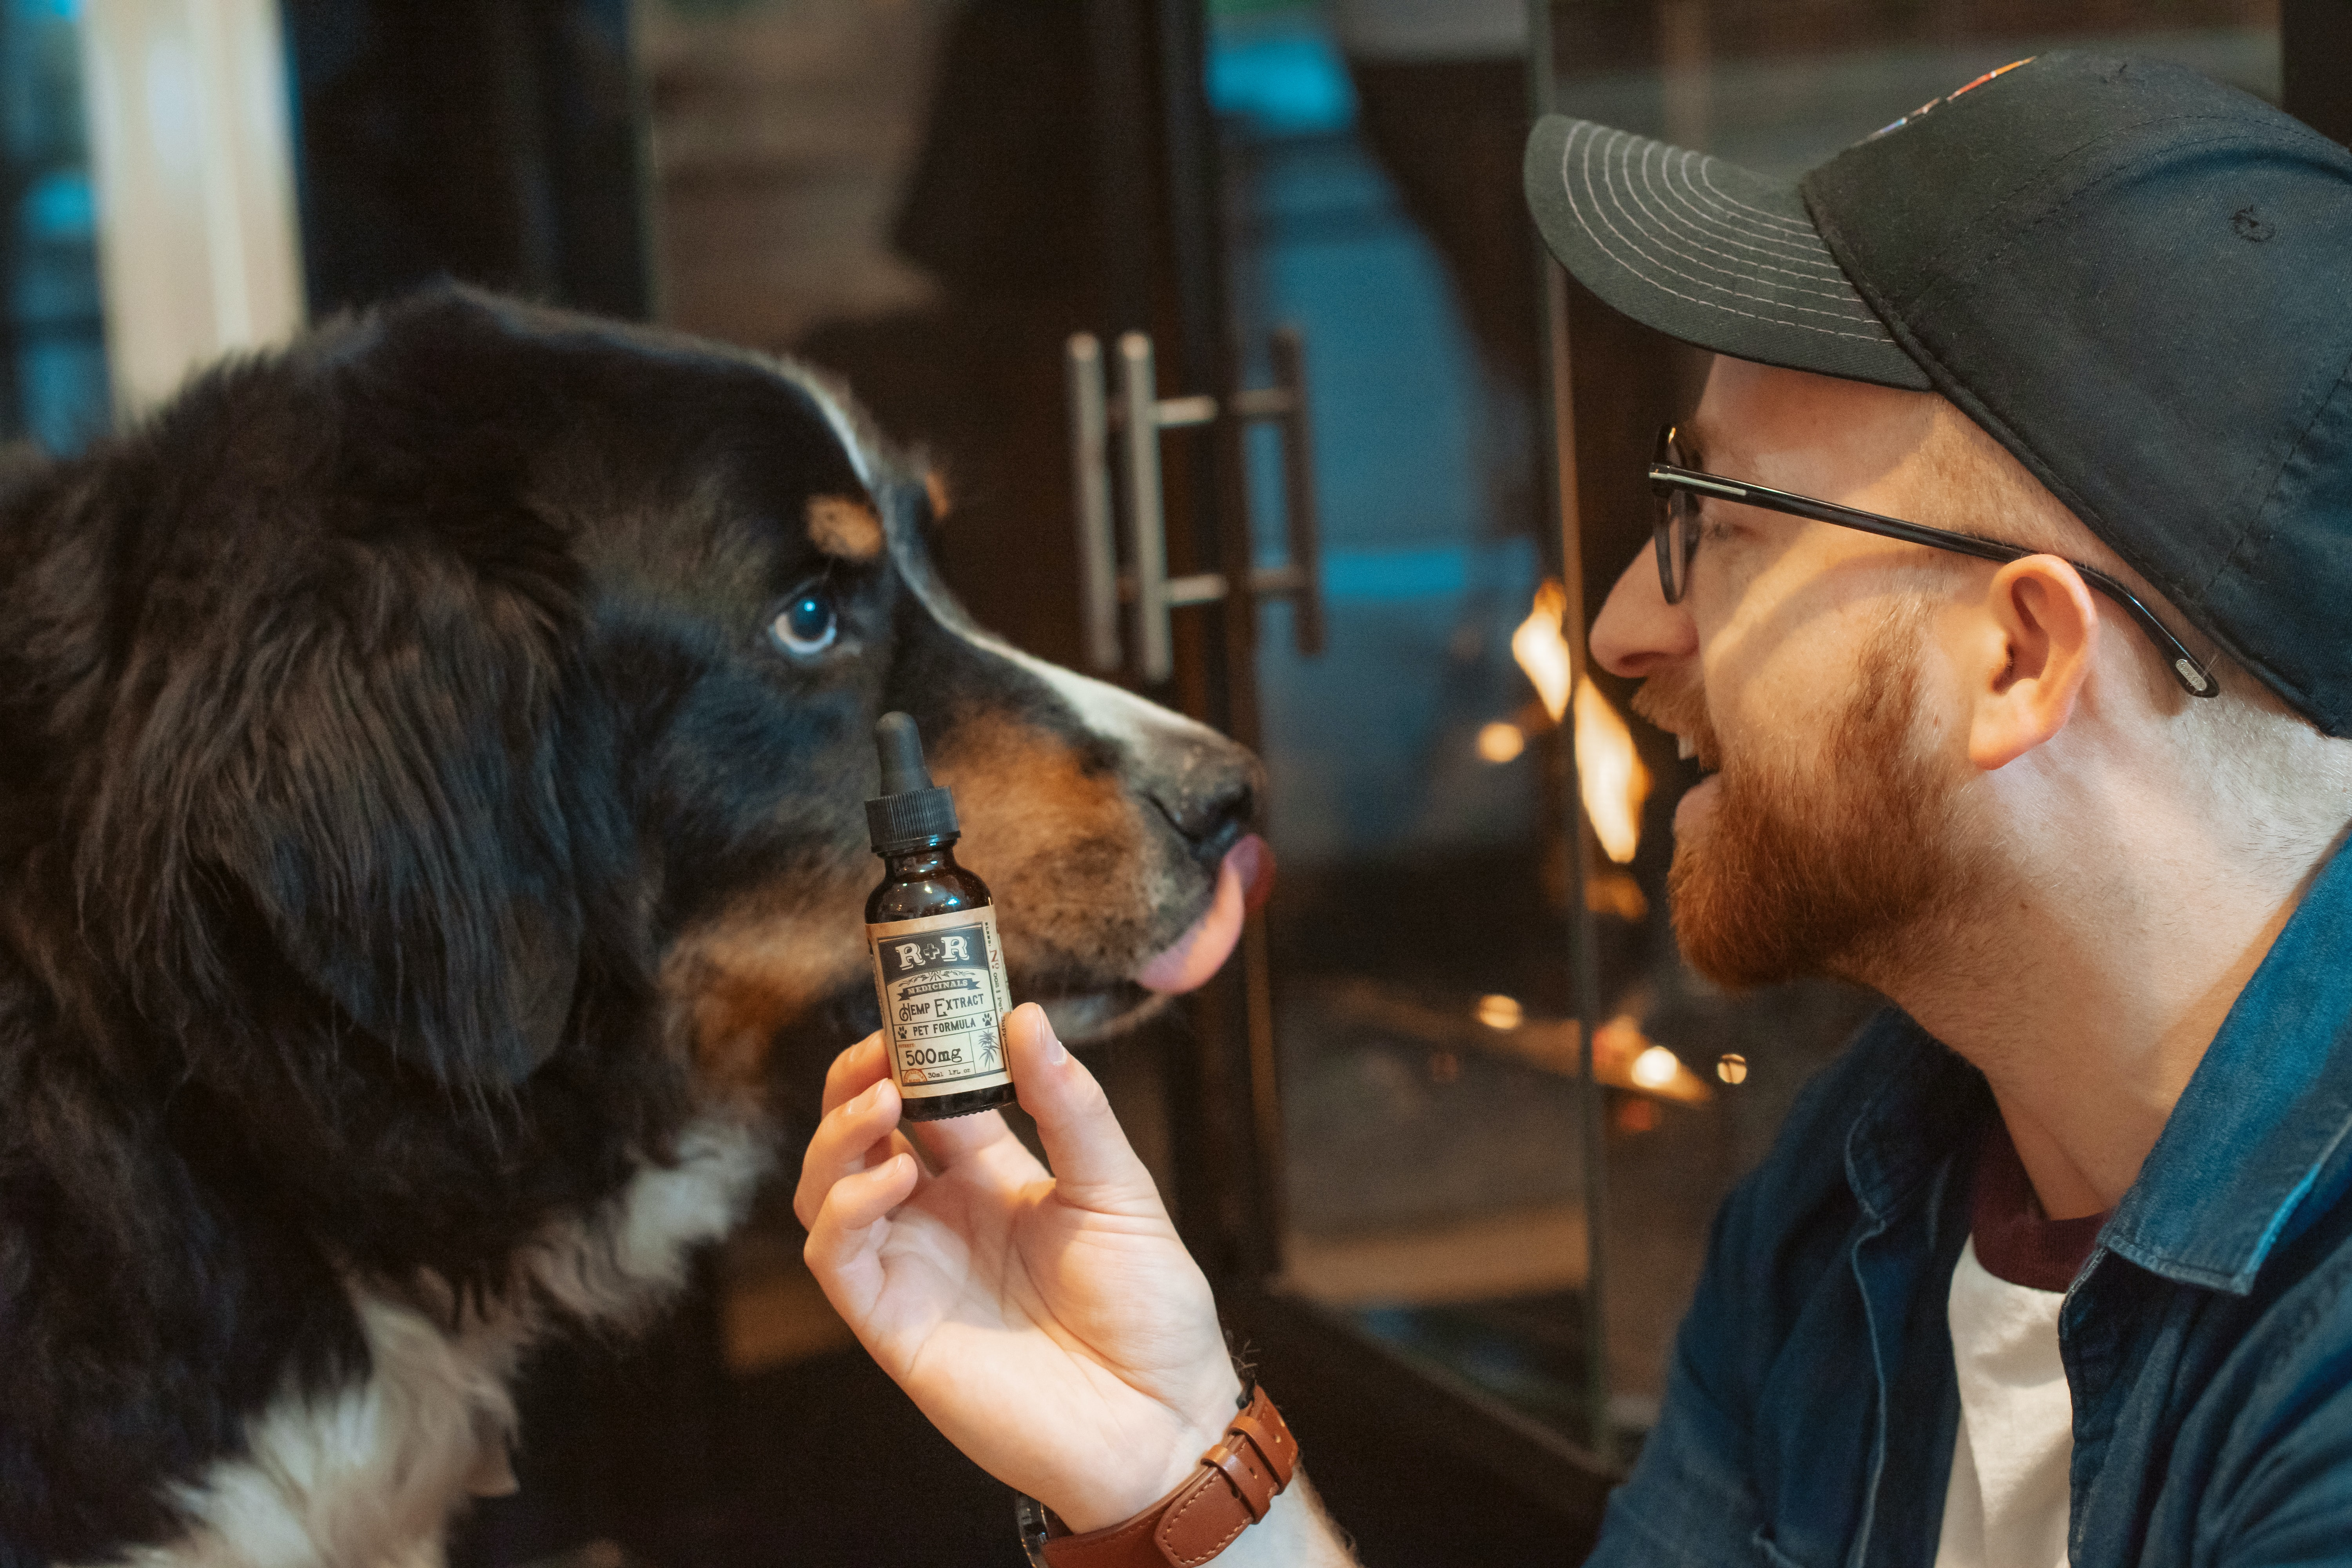 Health-conscious people use supplements or at least follow a strict balanced diet. But what about your dog? It's hard for your dog to get all the esse